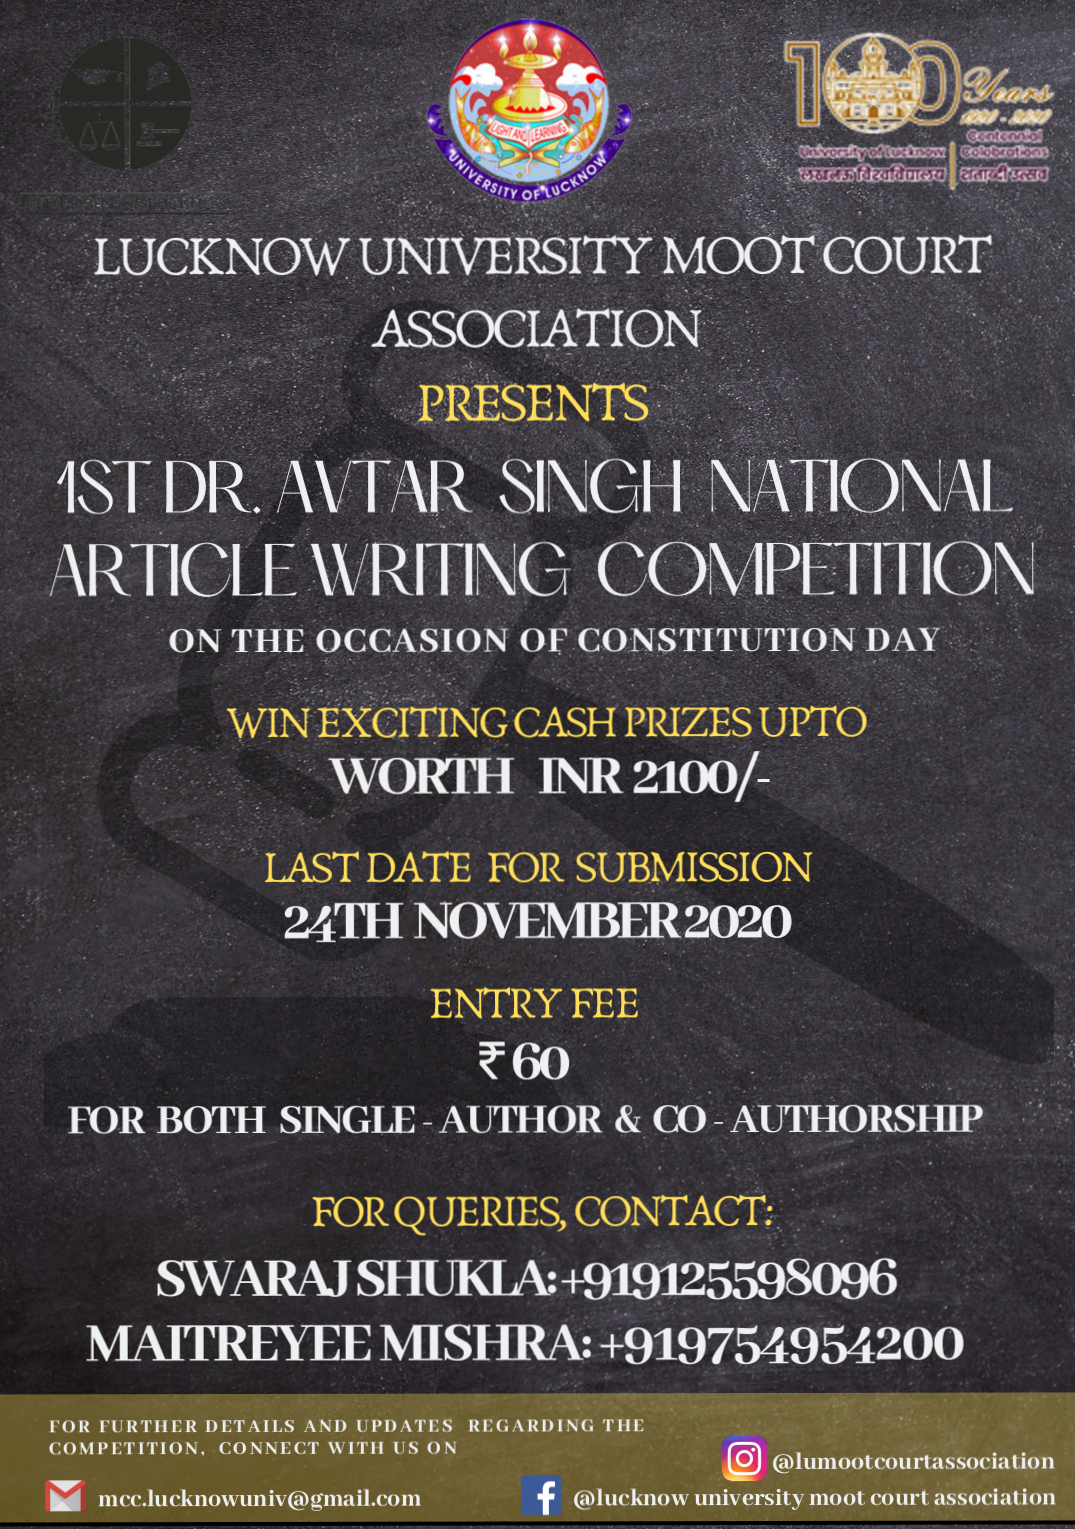 Lucknow University Moot Court Association (LUMA) is organizing 1st Dr. Avatar Singh National Article Writing Competition